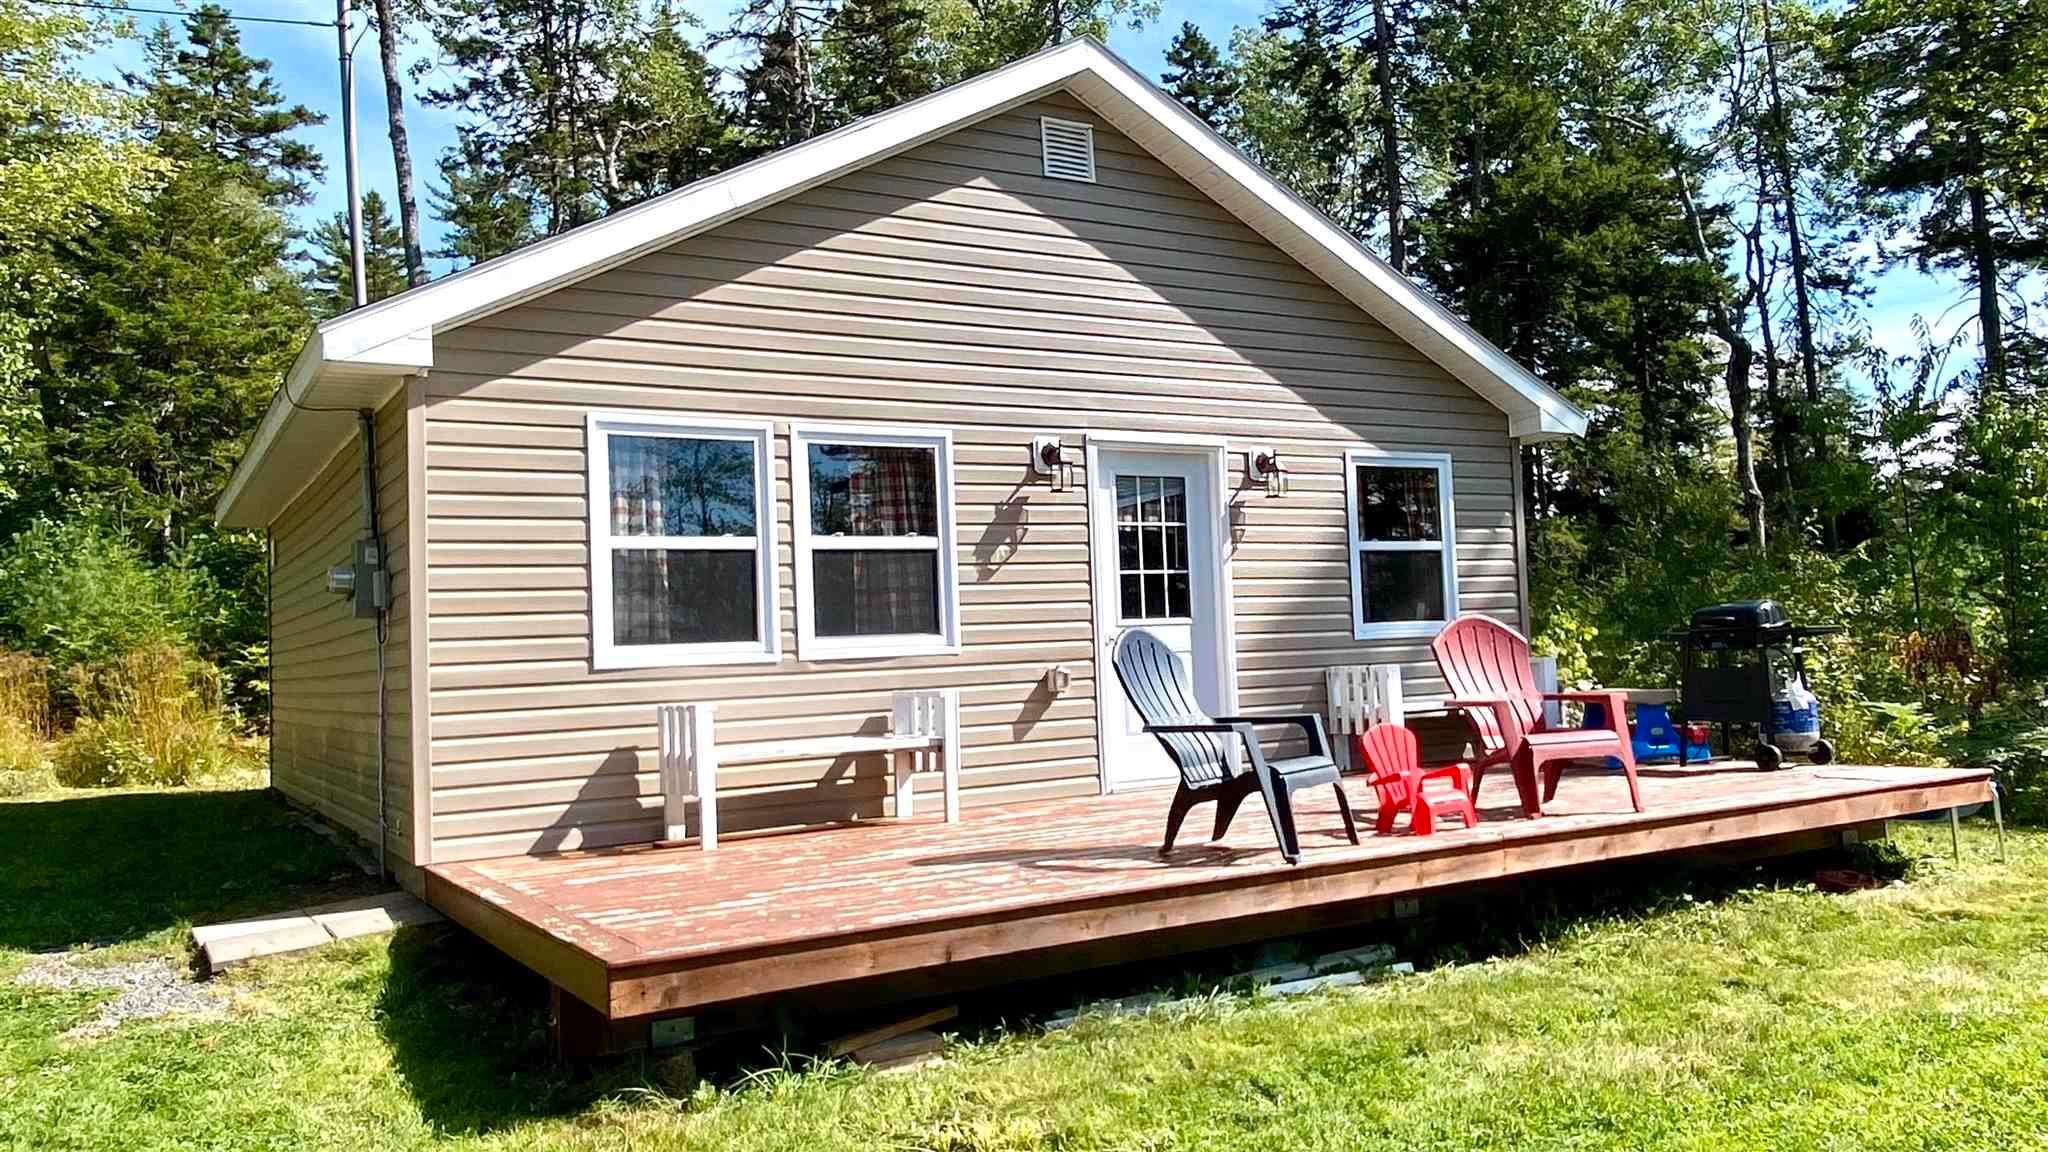 Main Photo: 313 Loon Lake Drive in Lake Paul: 404-Kings County Residential for sale (Annapolis Valley)  : MLS®# 202122710